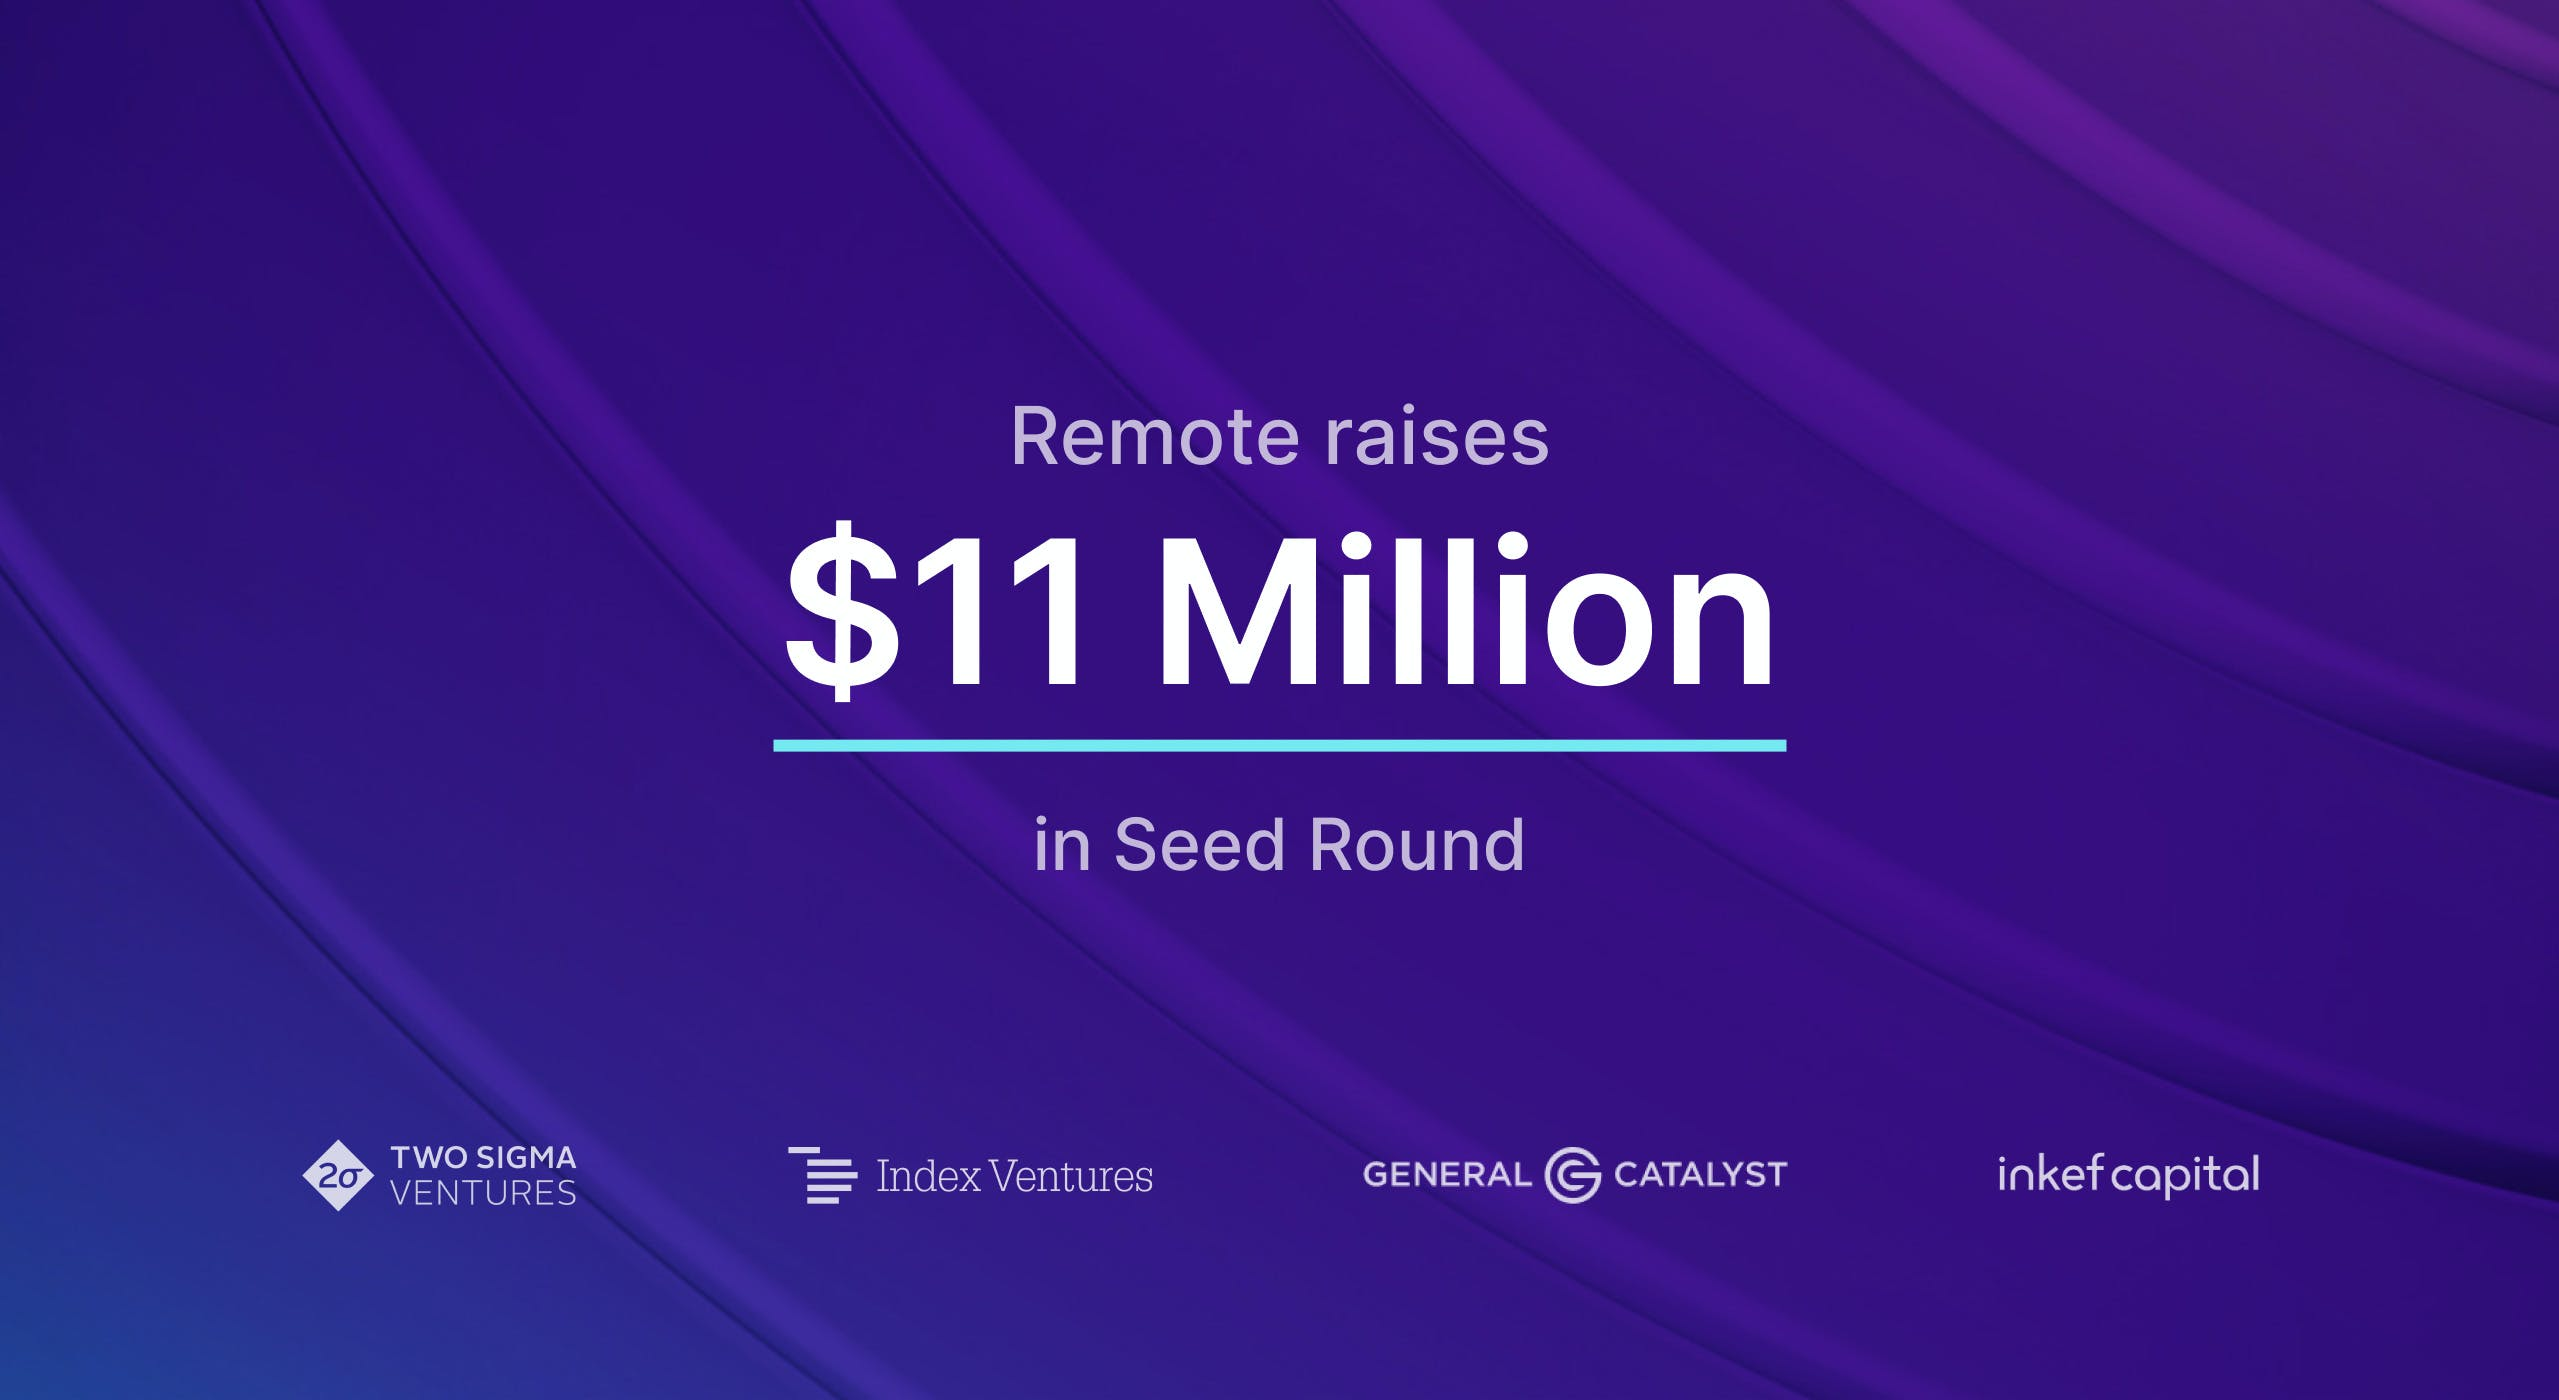 $11 million seed round announcement with investor names